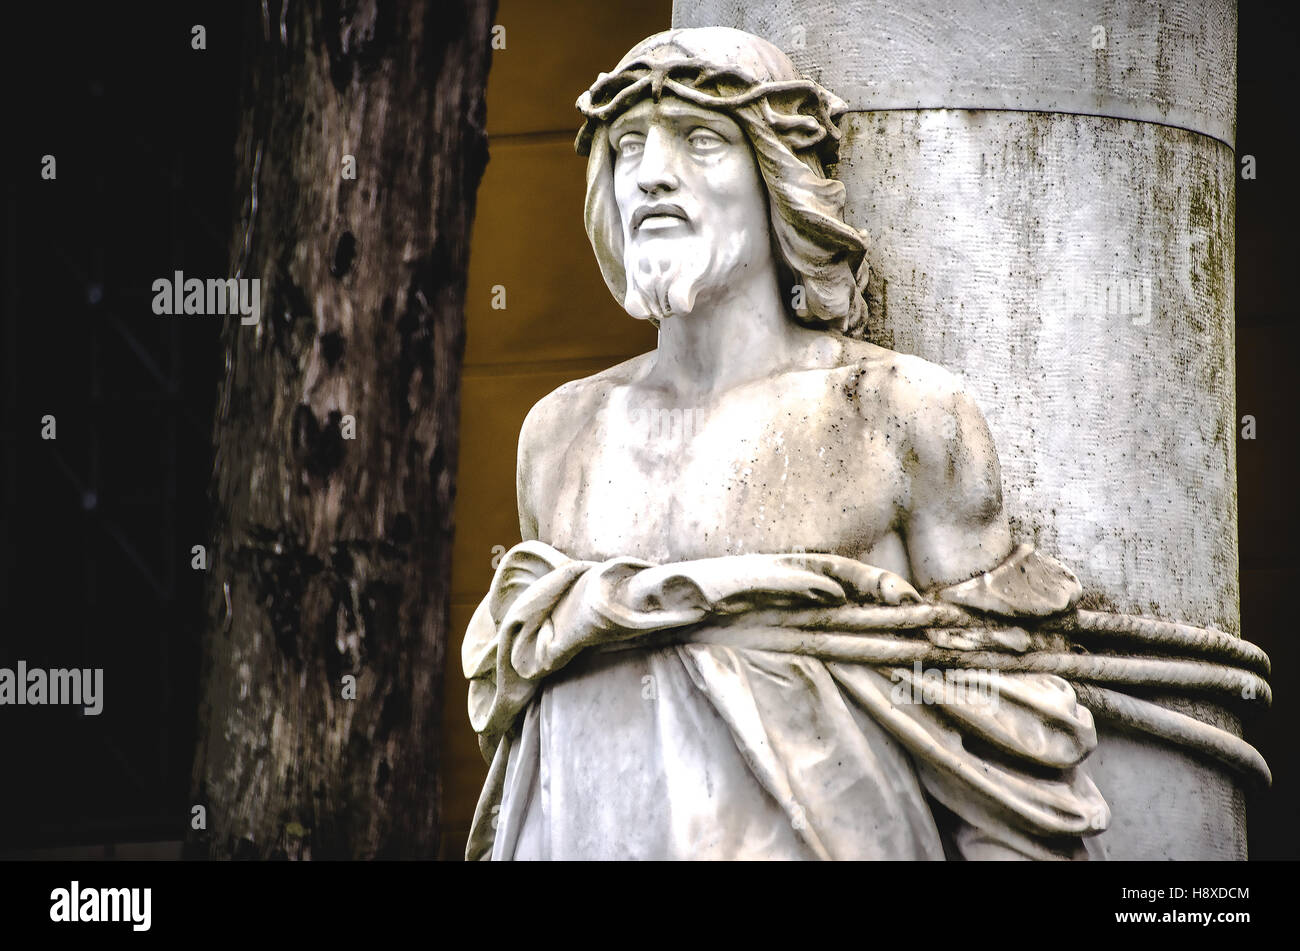 statue of Jesus Christ tied to a column in the Monumental Cemetery La Certosa of Bologna - Stock Image